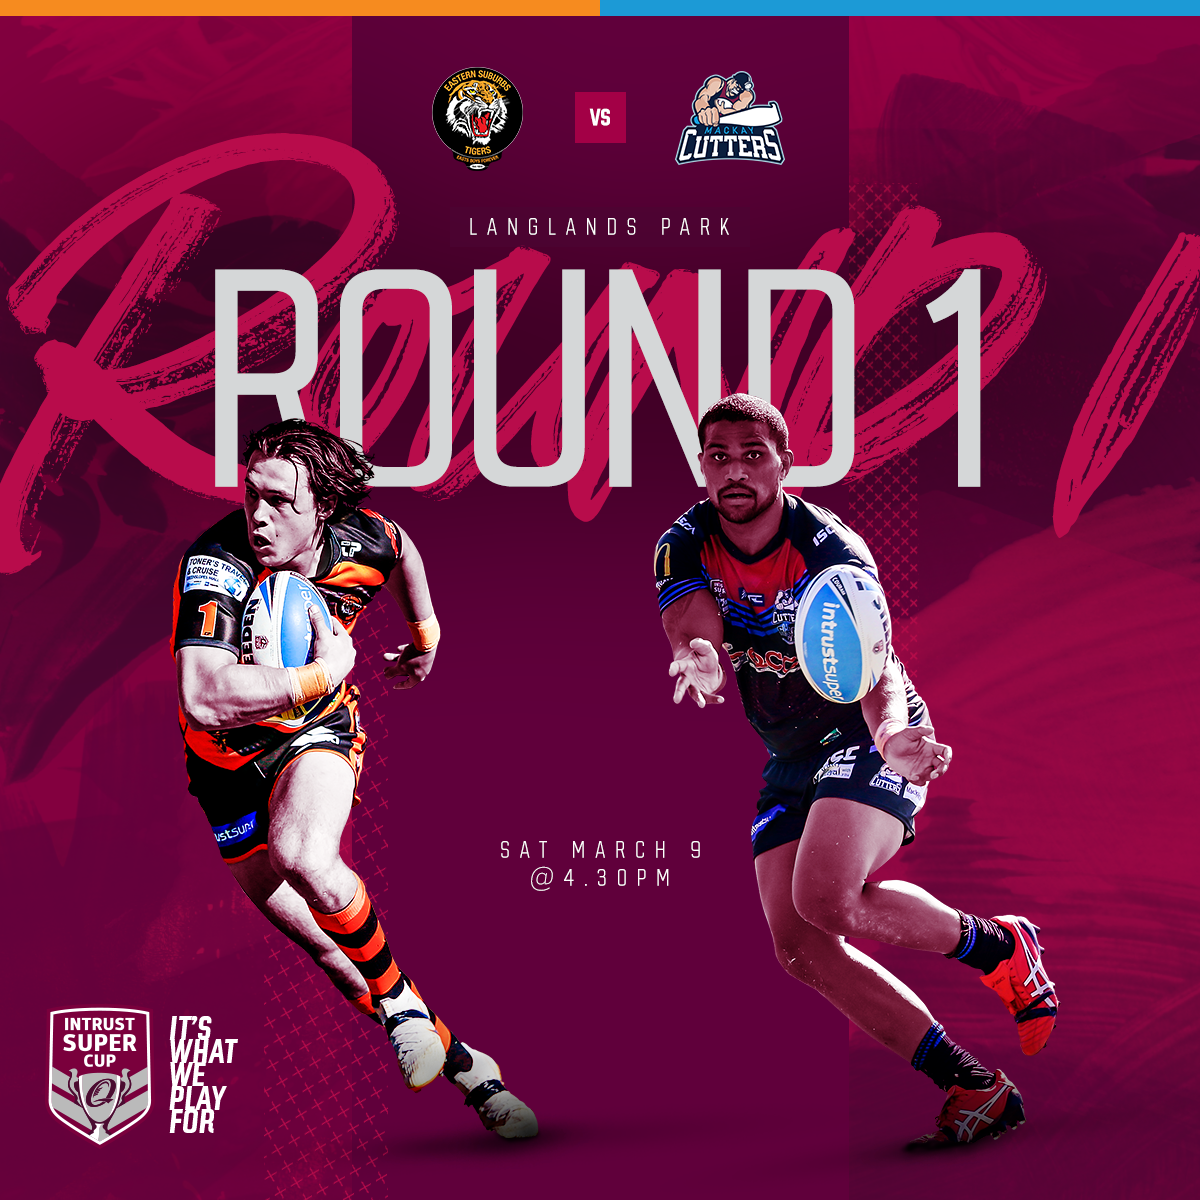 Intrust Super Cup Round 1 Season 2019 Easts Tigers v Mackay Cutters from Langlands Park, Kick off at 4.30pm